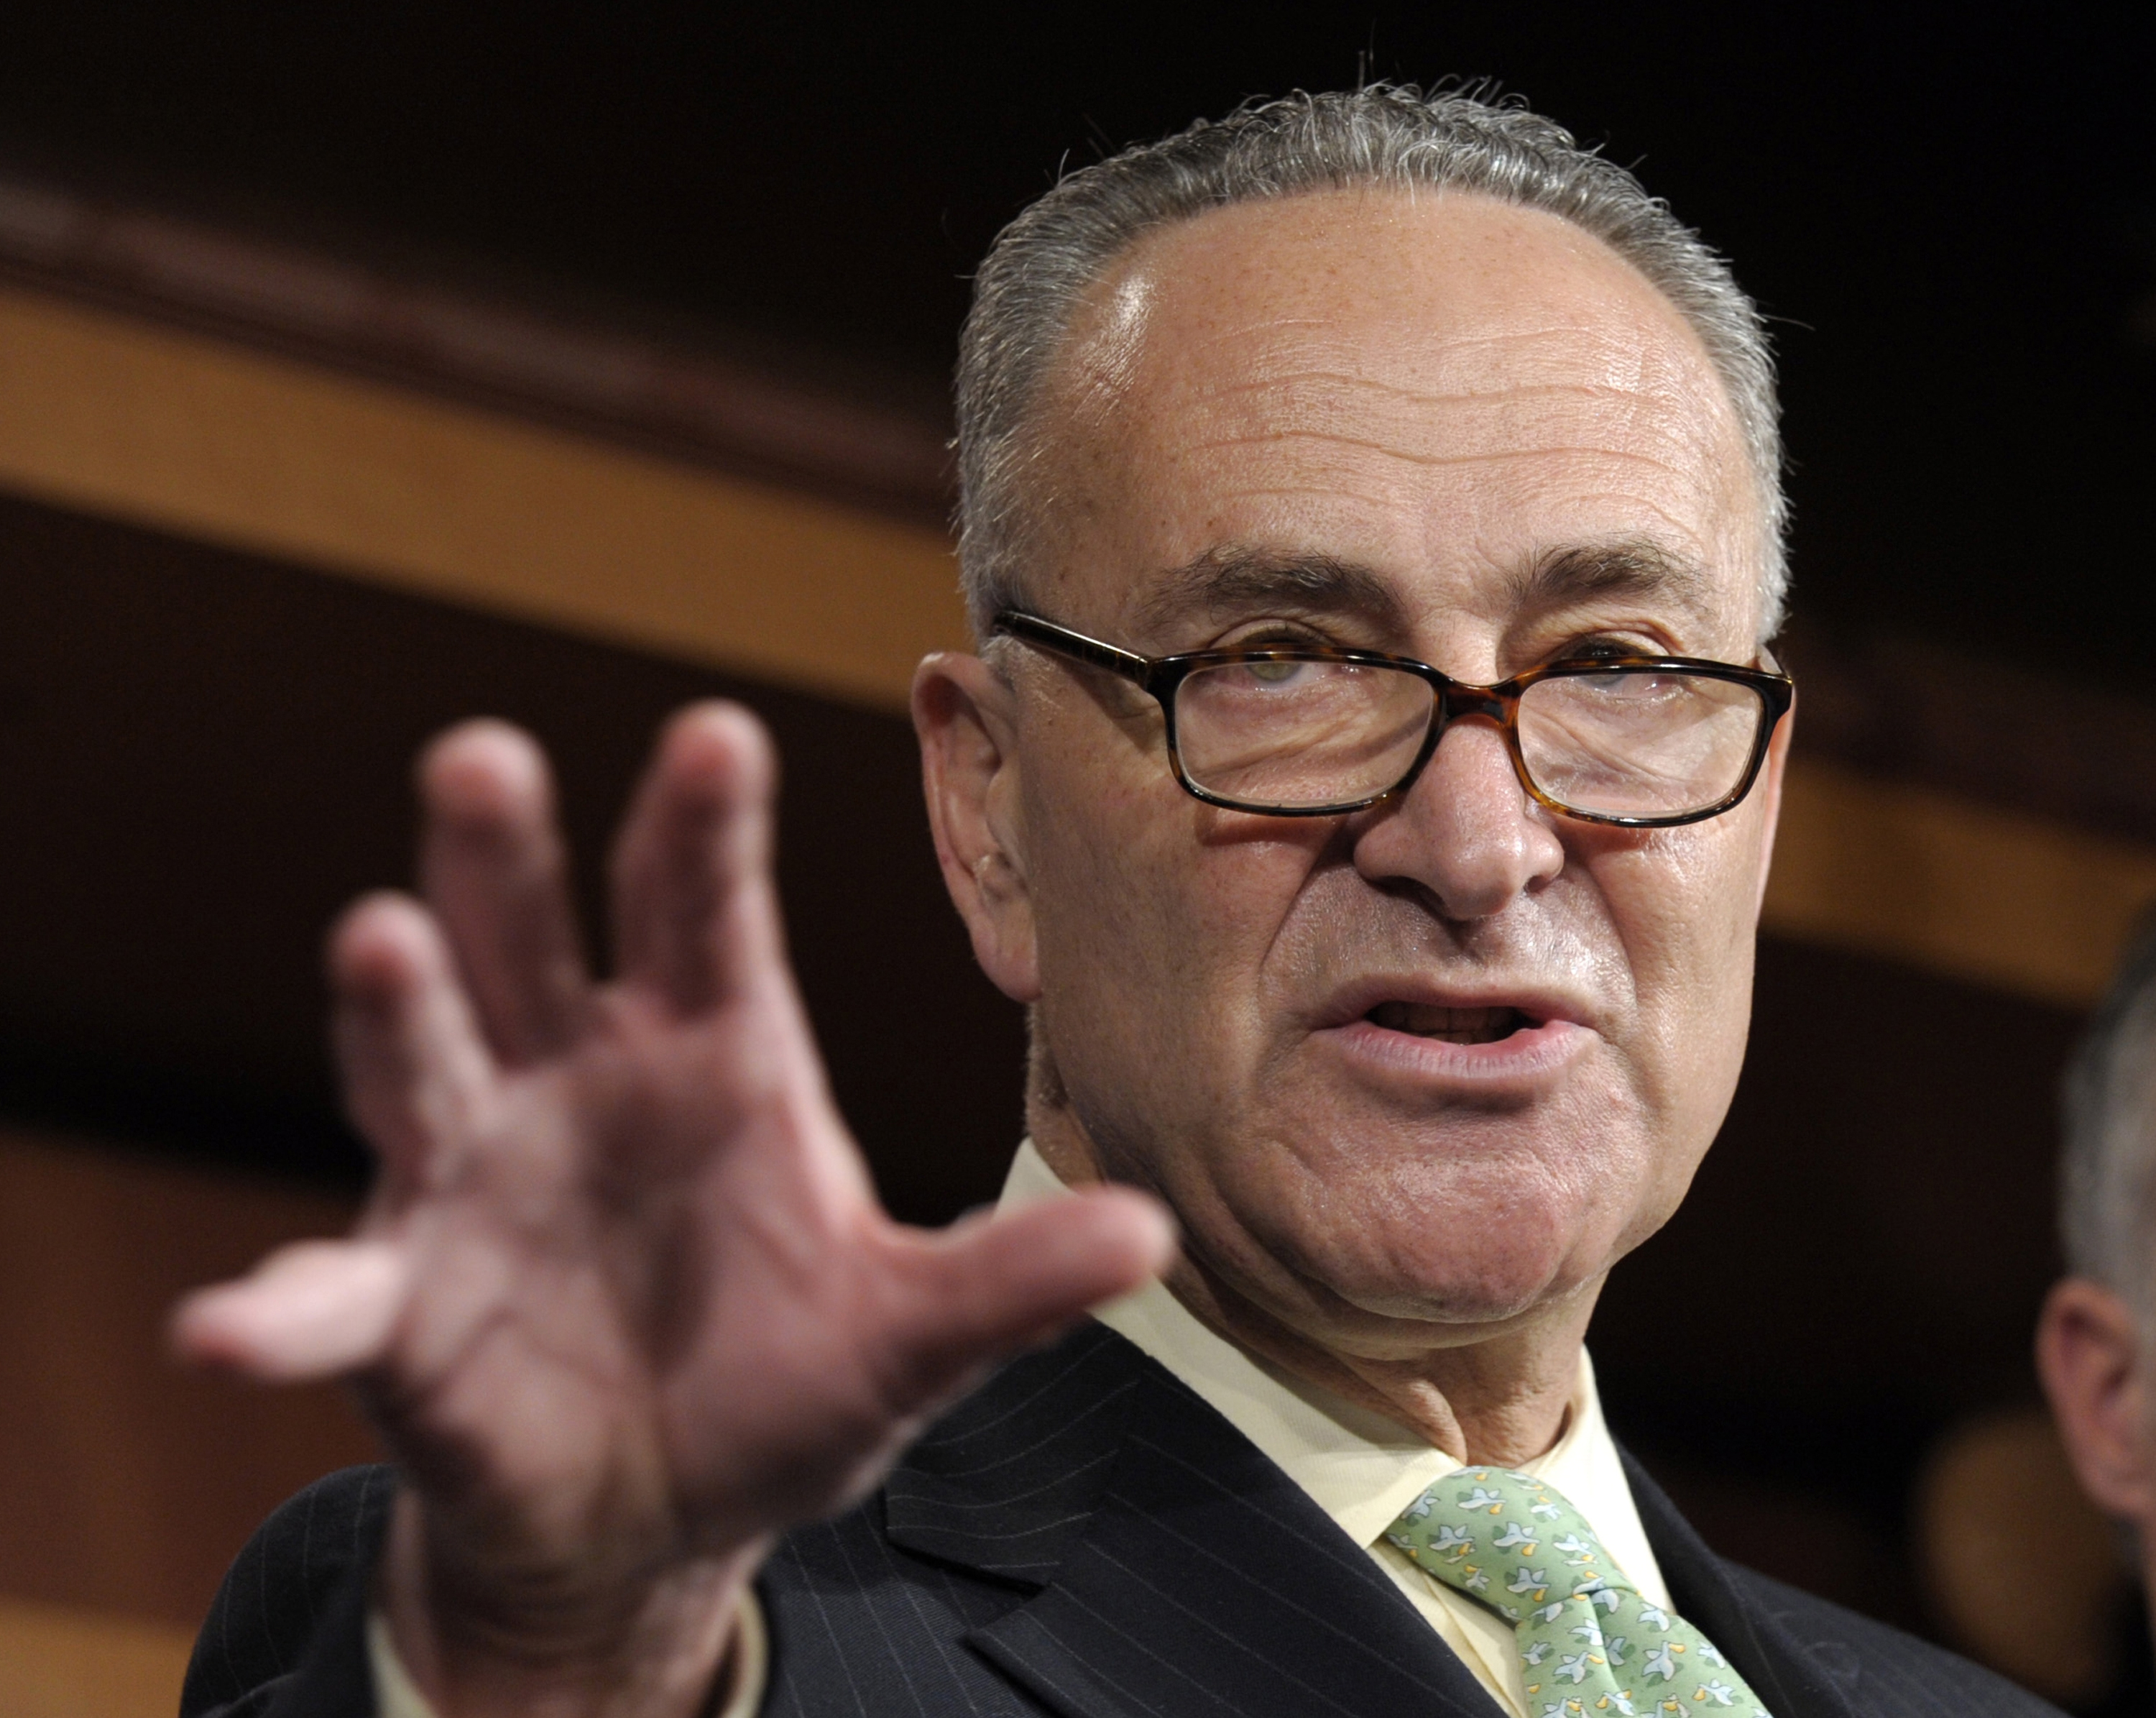 """Sen. Charles E. Schumer says Falls-U.S. program is going to put """"a lot of heat on criminals"""" who threaten safety in the city."""